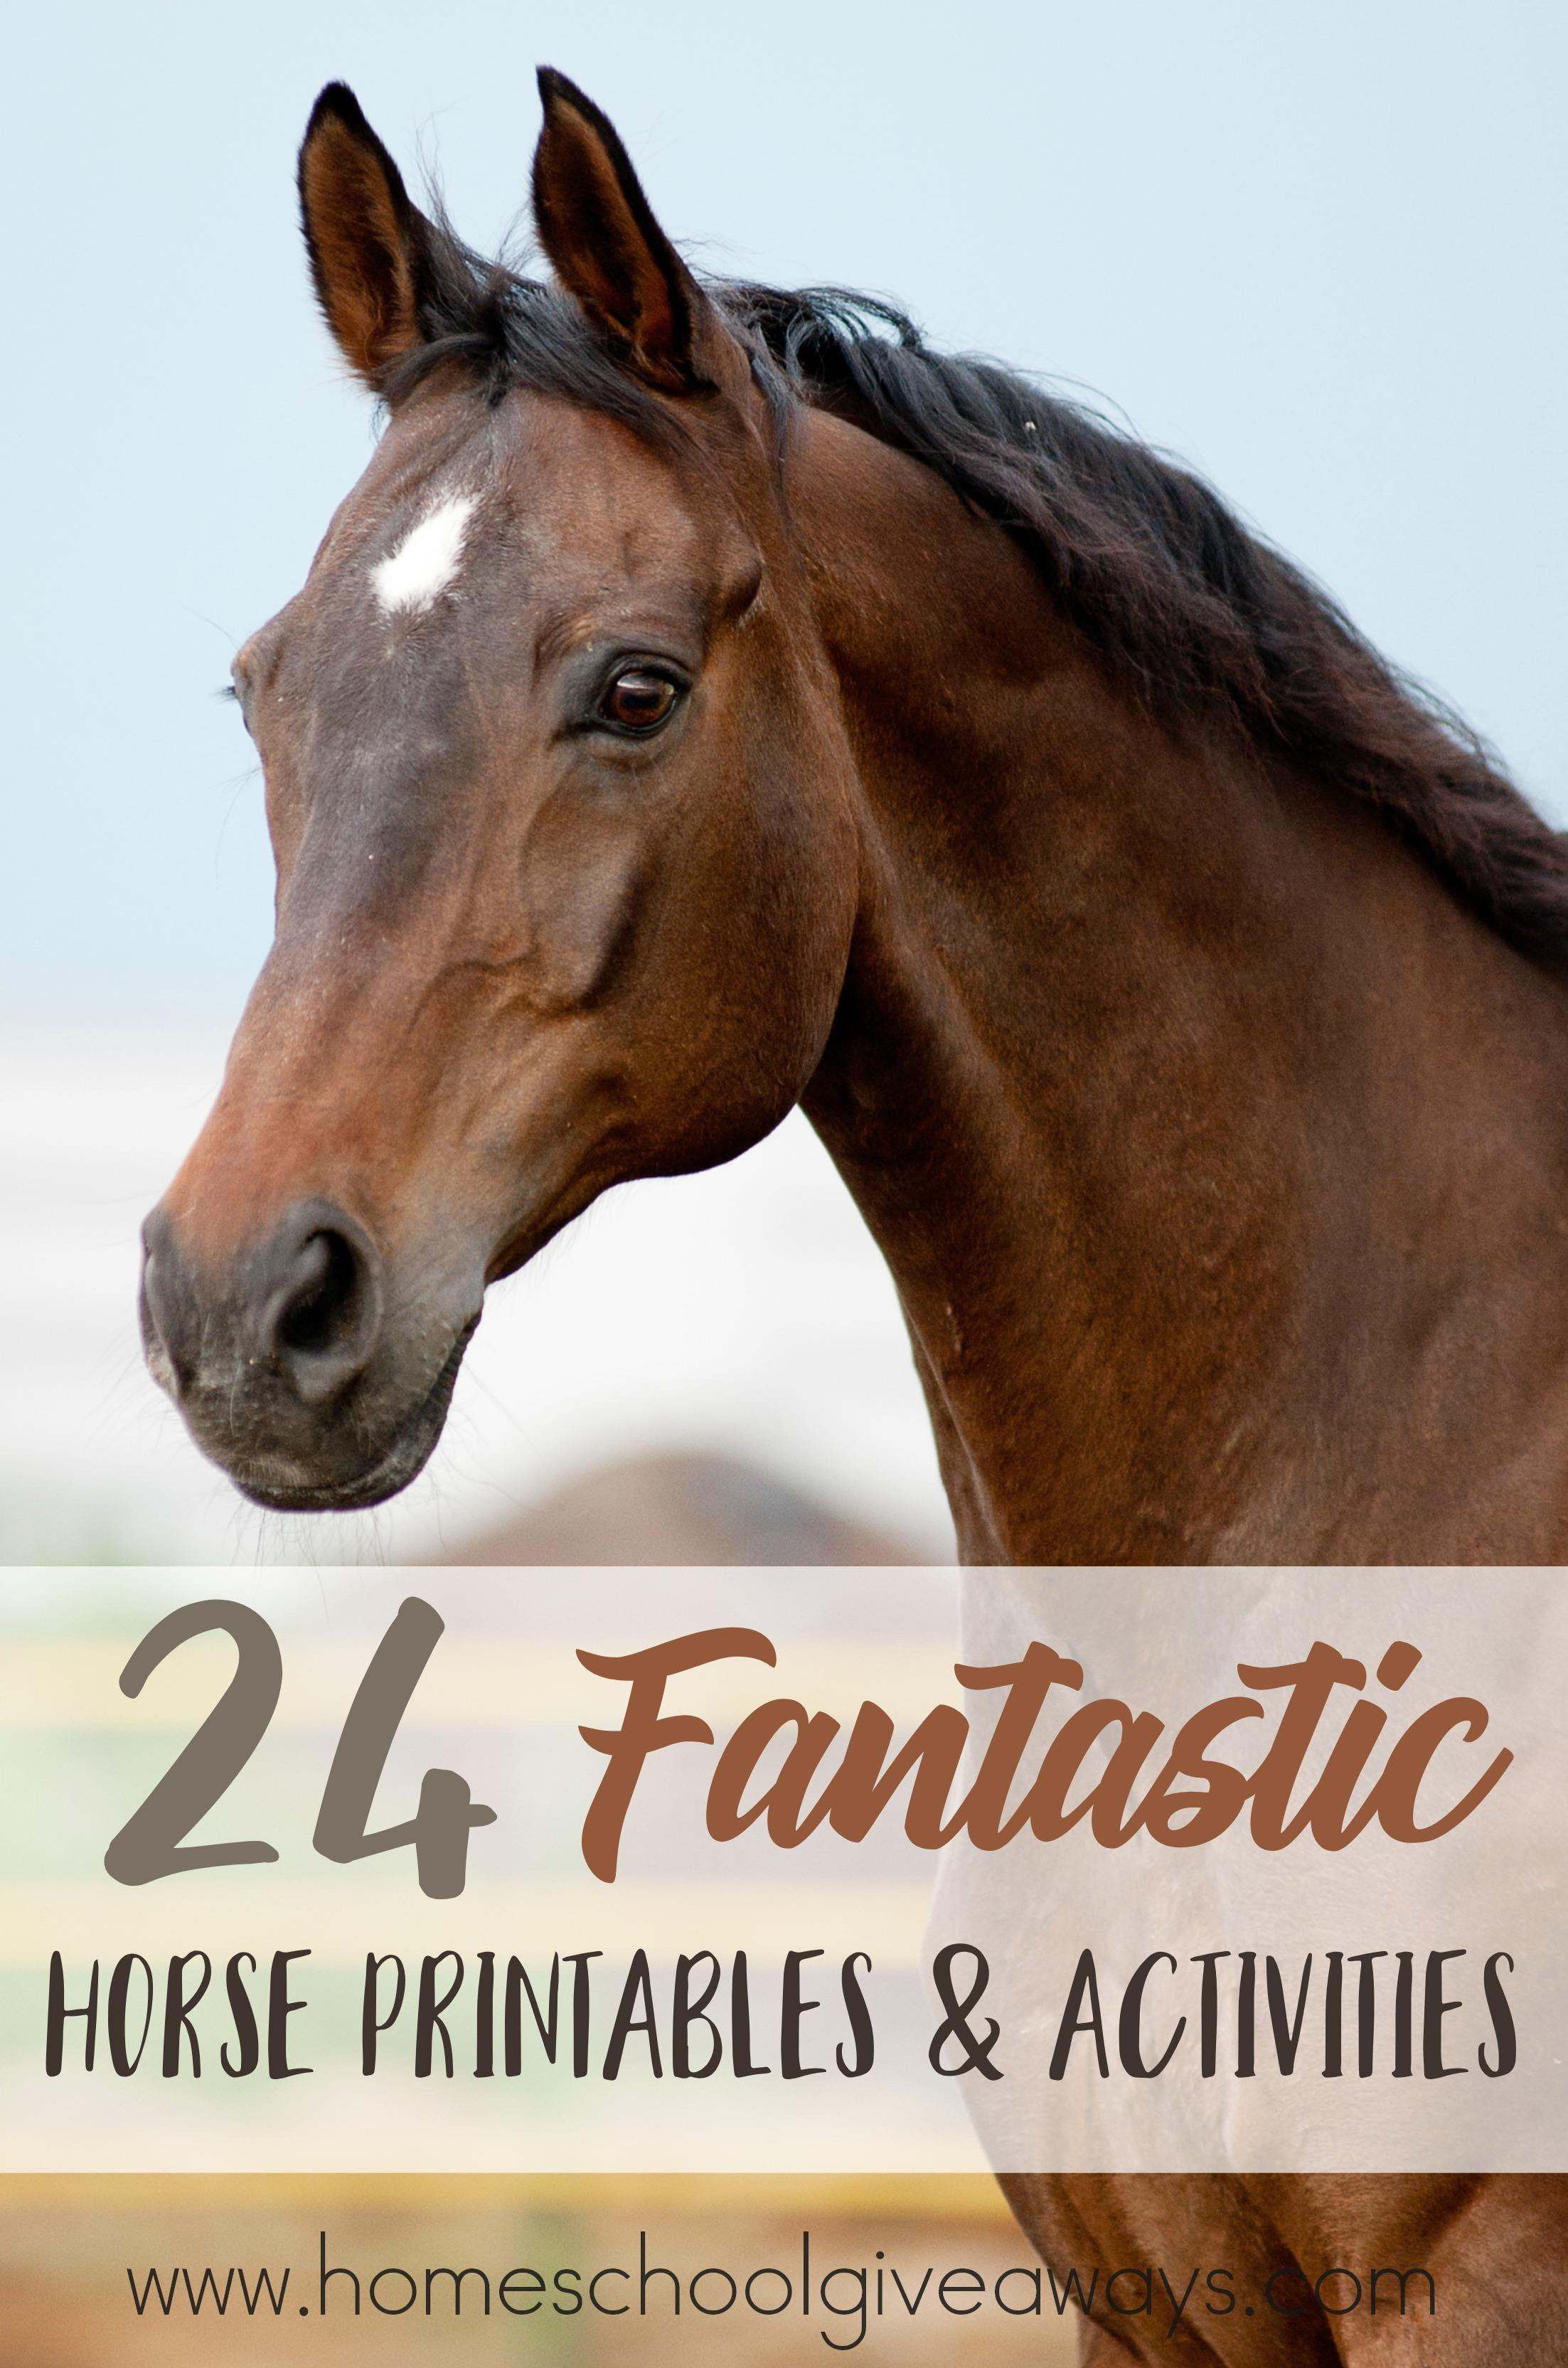 Printable Horse Anatomy Worksheets 24 Fantastic Horse Printables & Activities Homeschool